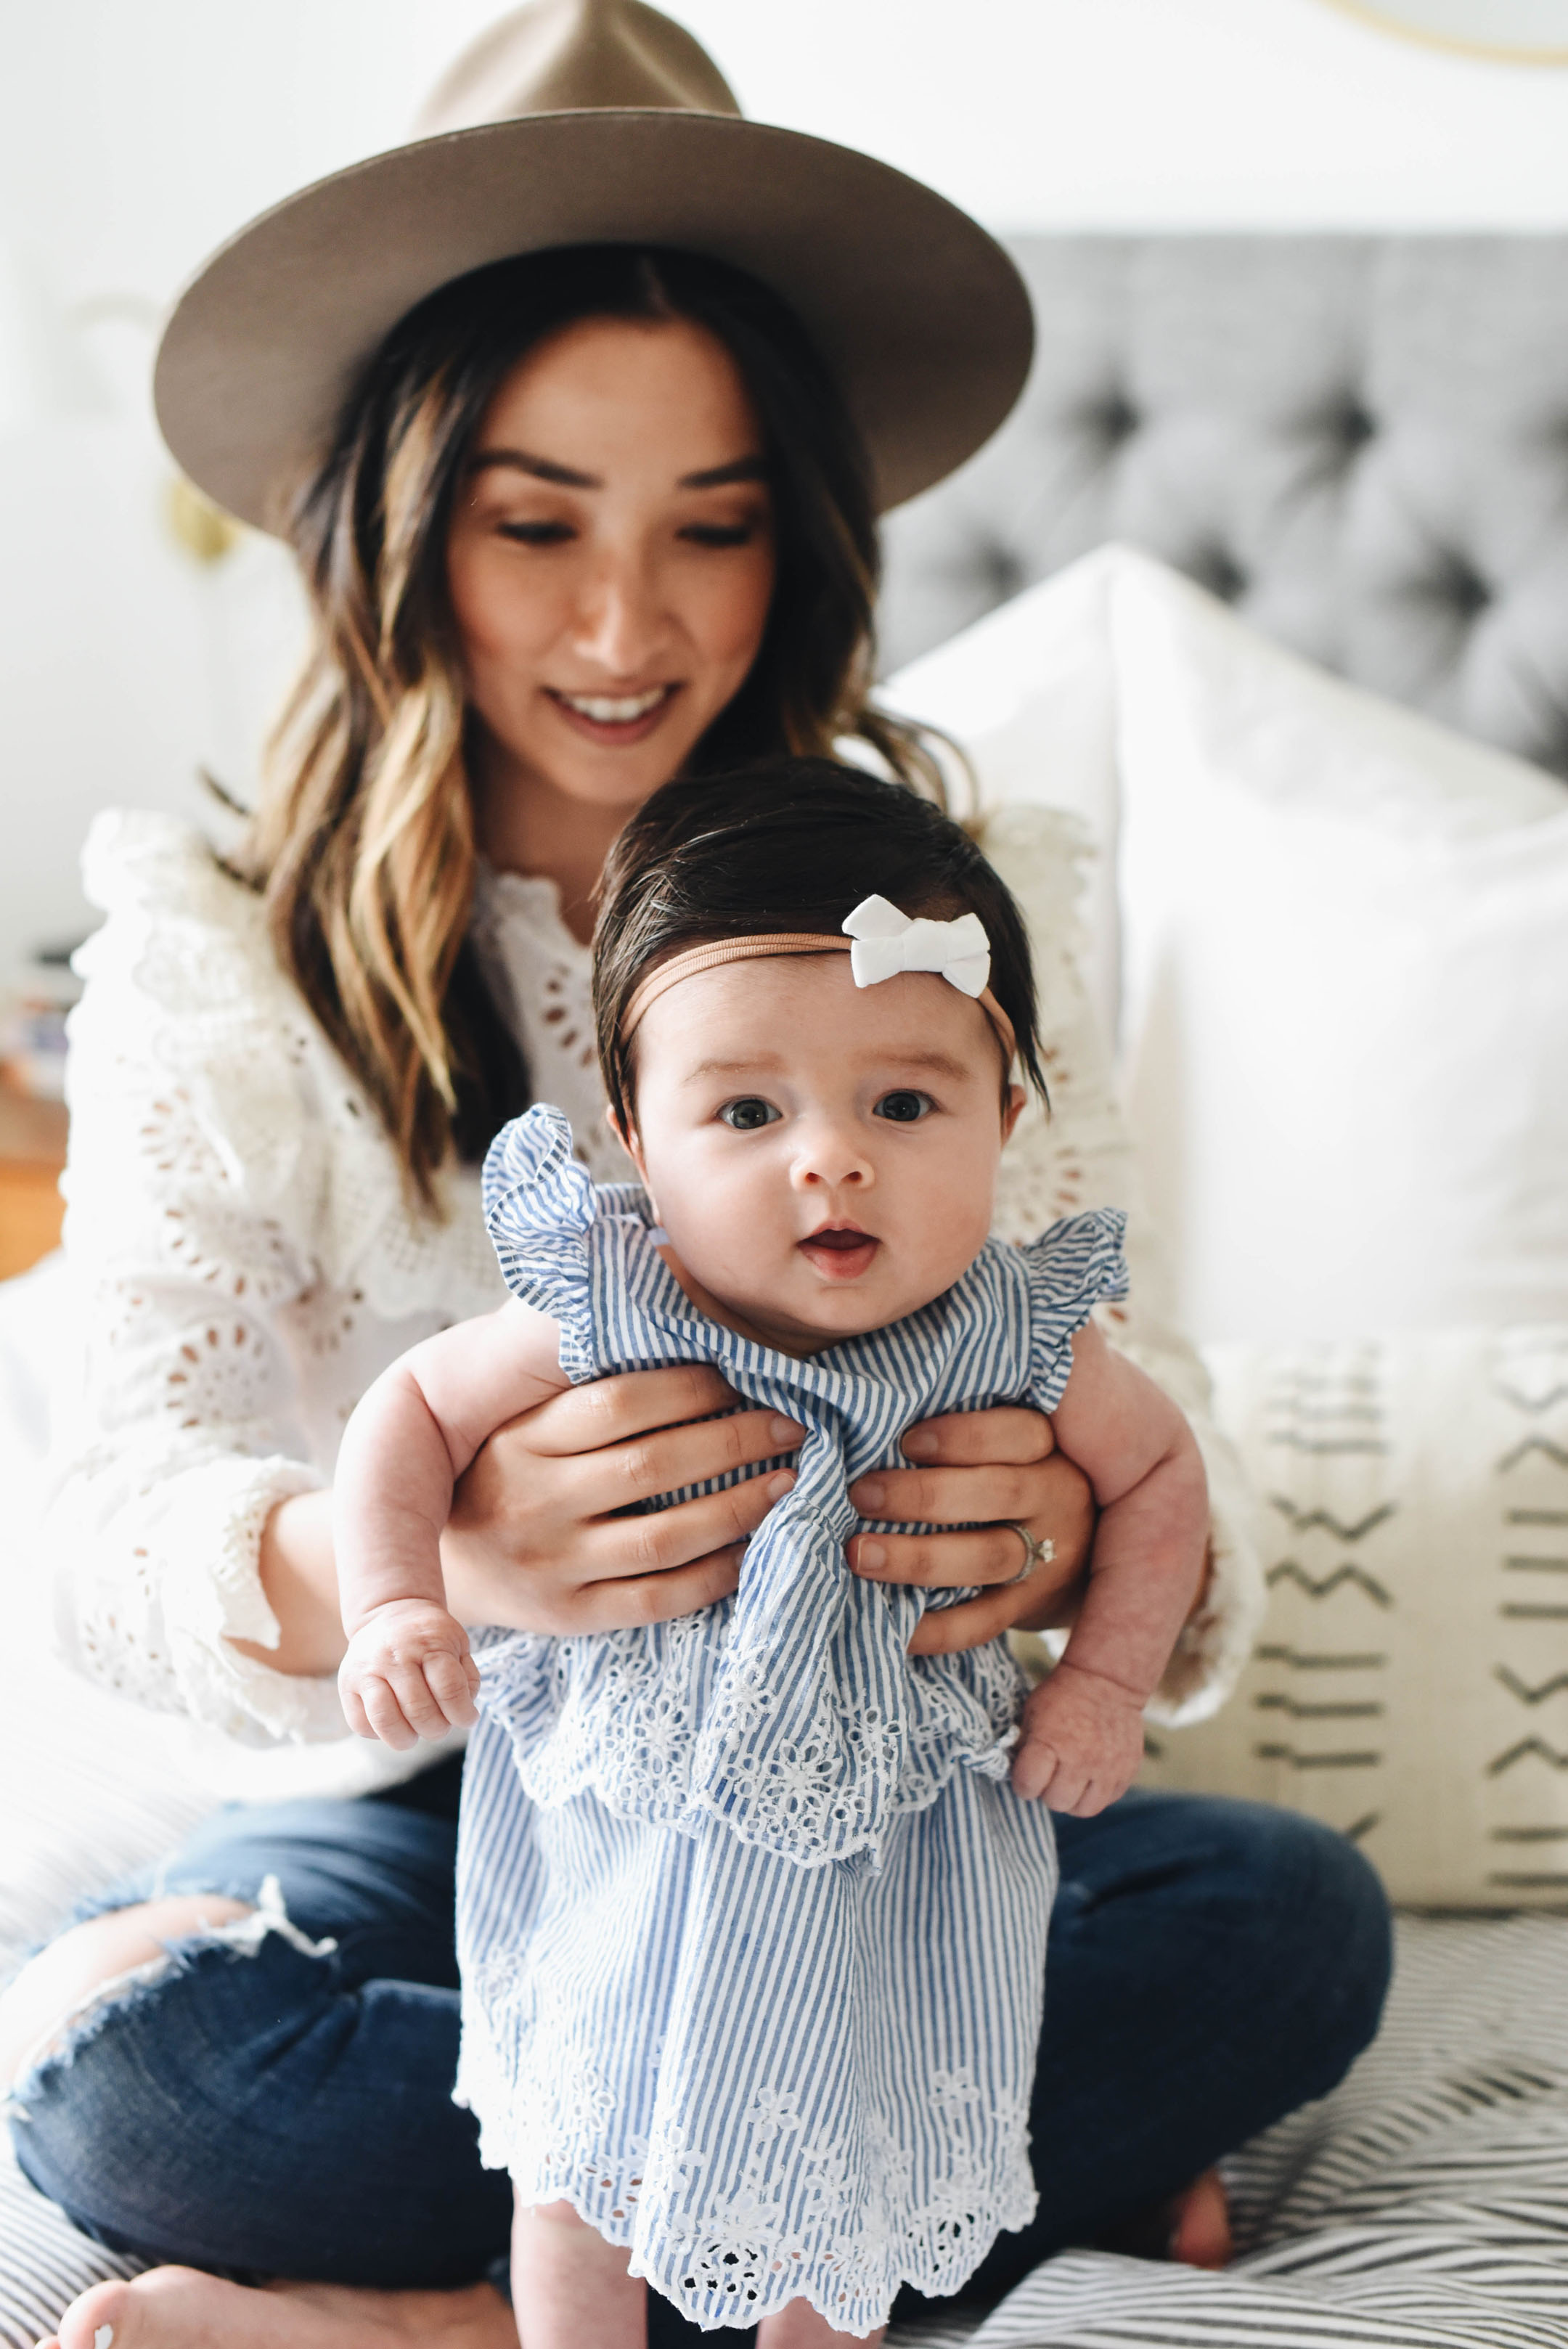 How to dress for mom and daughter photos